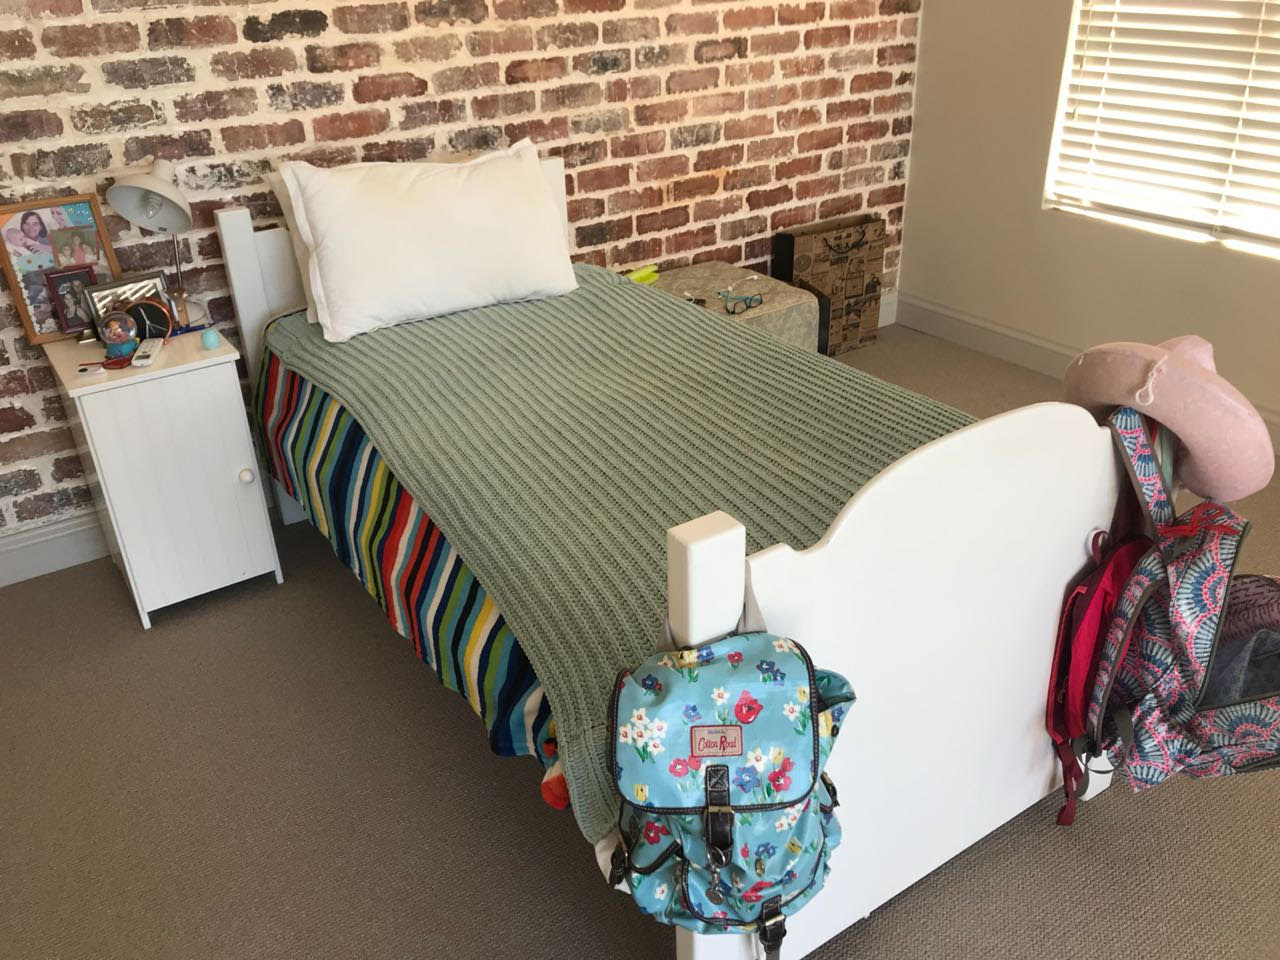 White single bed and other items